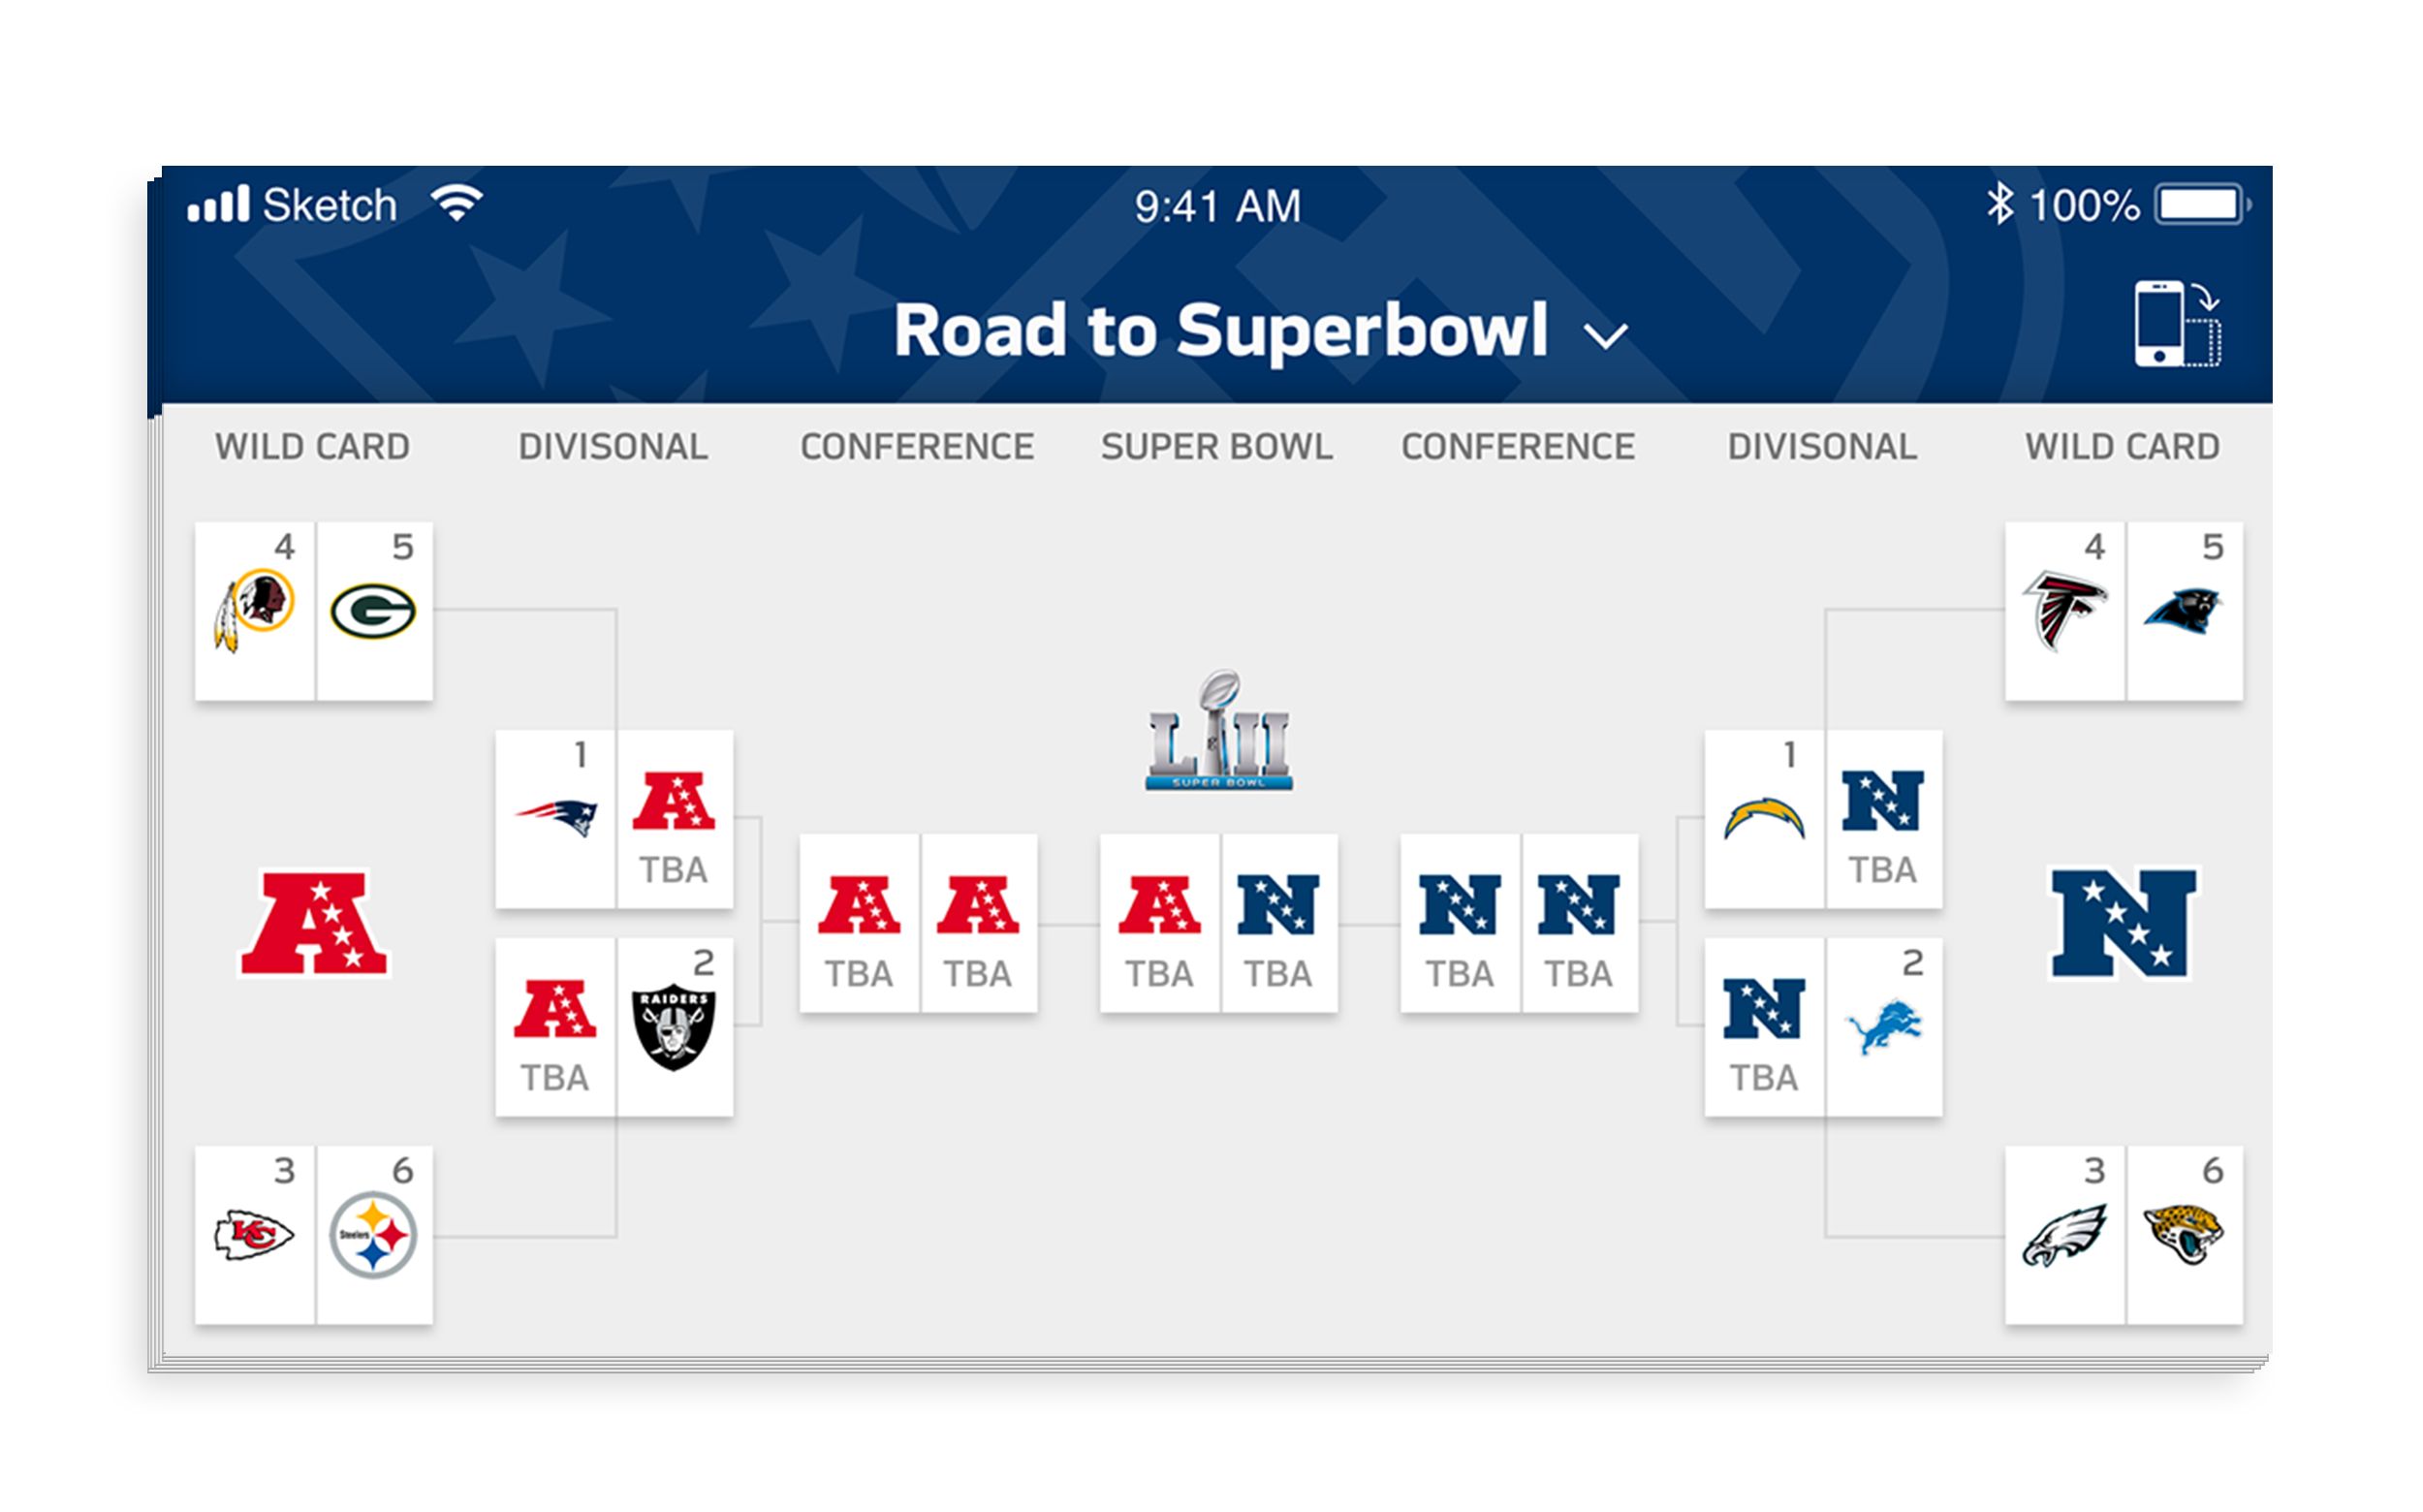 - If users decide to rotate their phones horizontally, they can see a full bracket that gives an overview of the journey to Super Bowl. This is the bracket for Wild Card Weekend, when two teams from each conference have moved up to the divisional playoffs already.